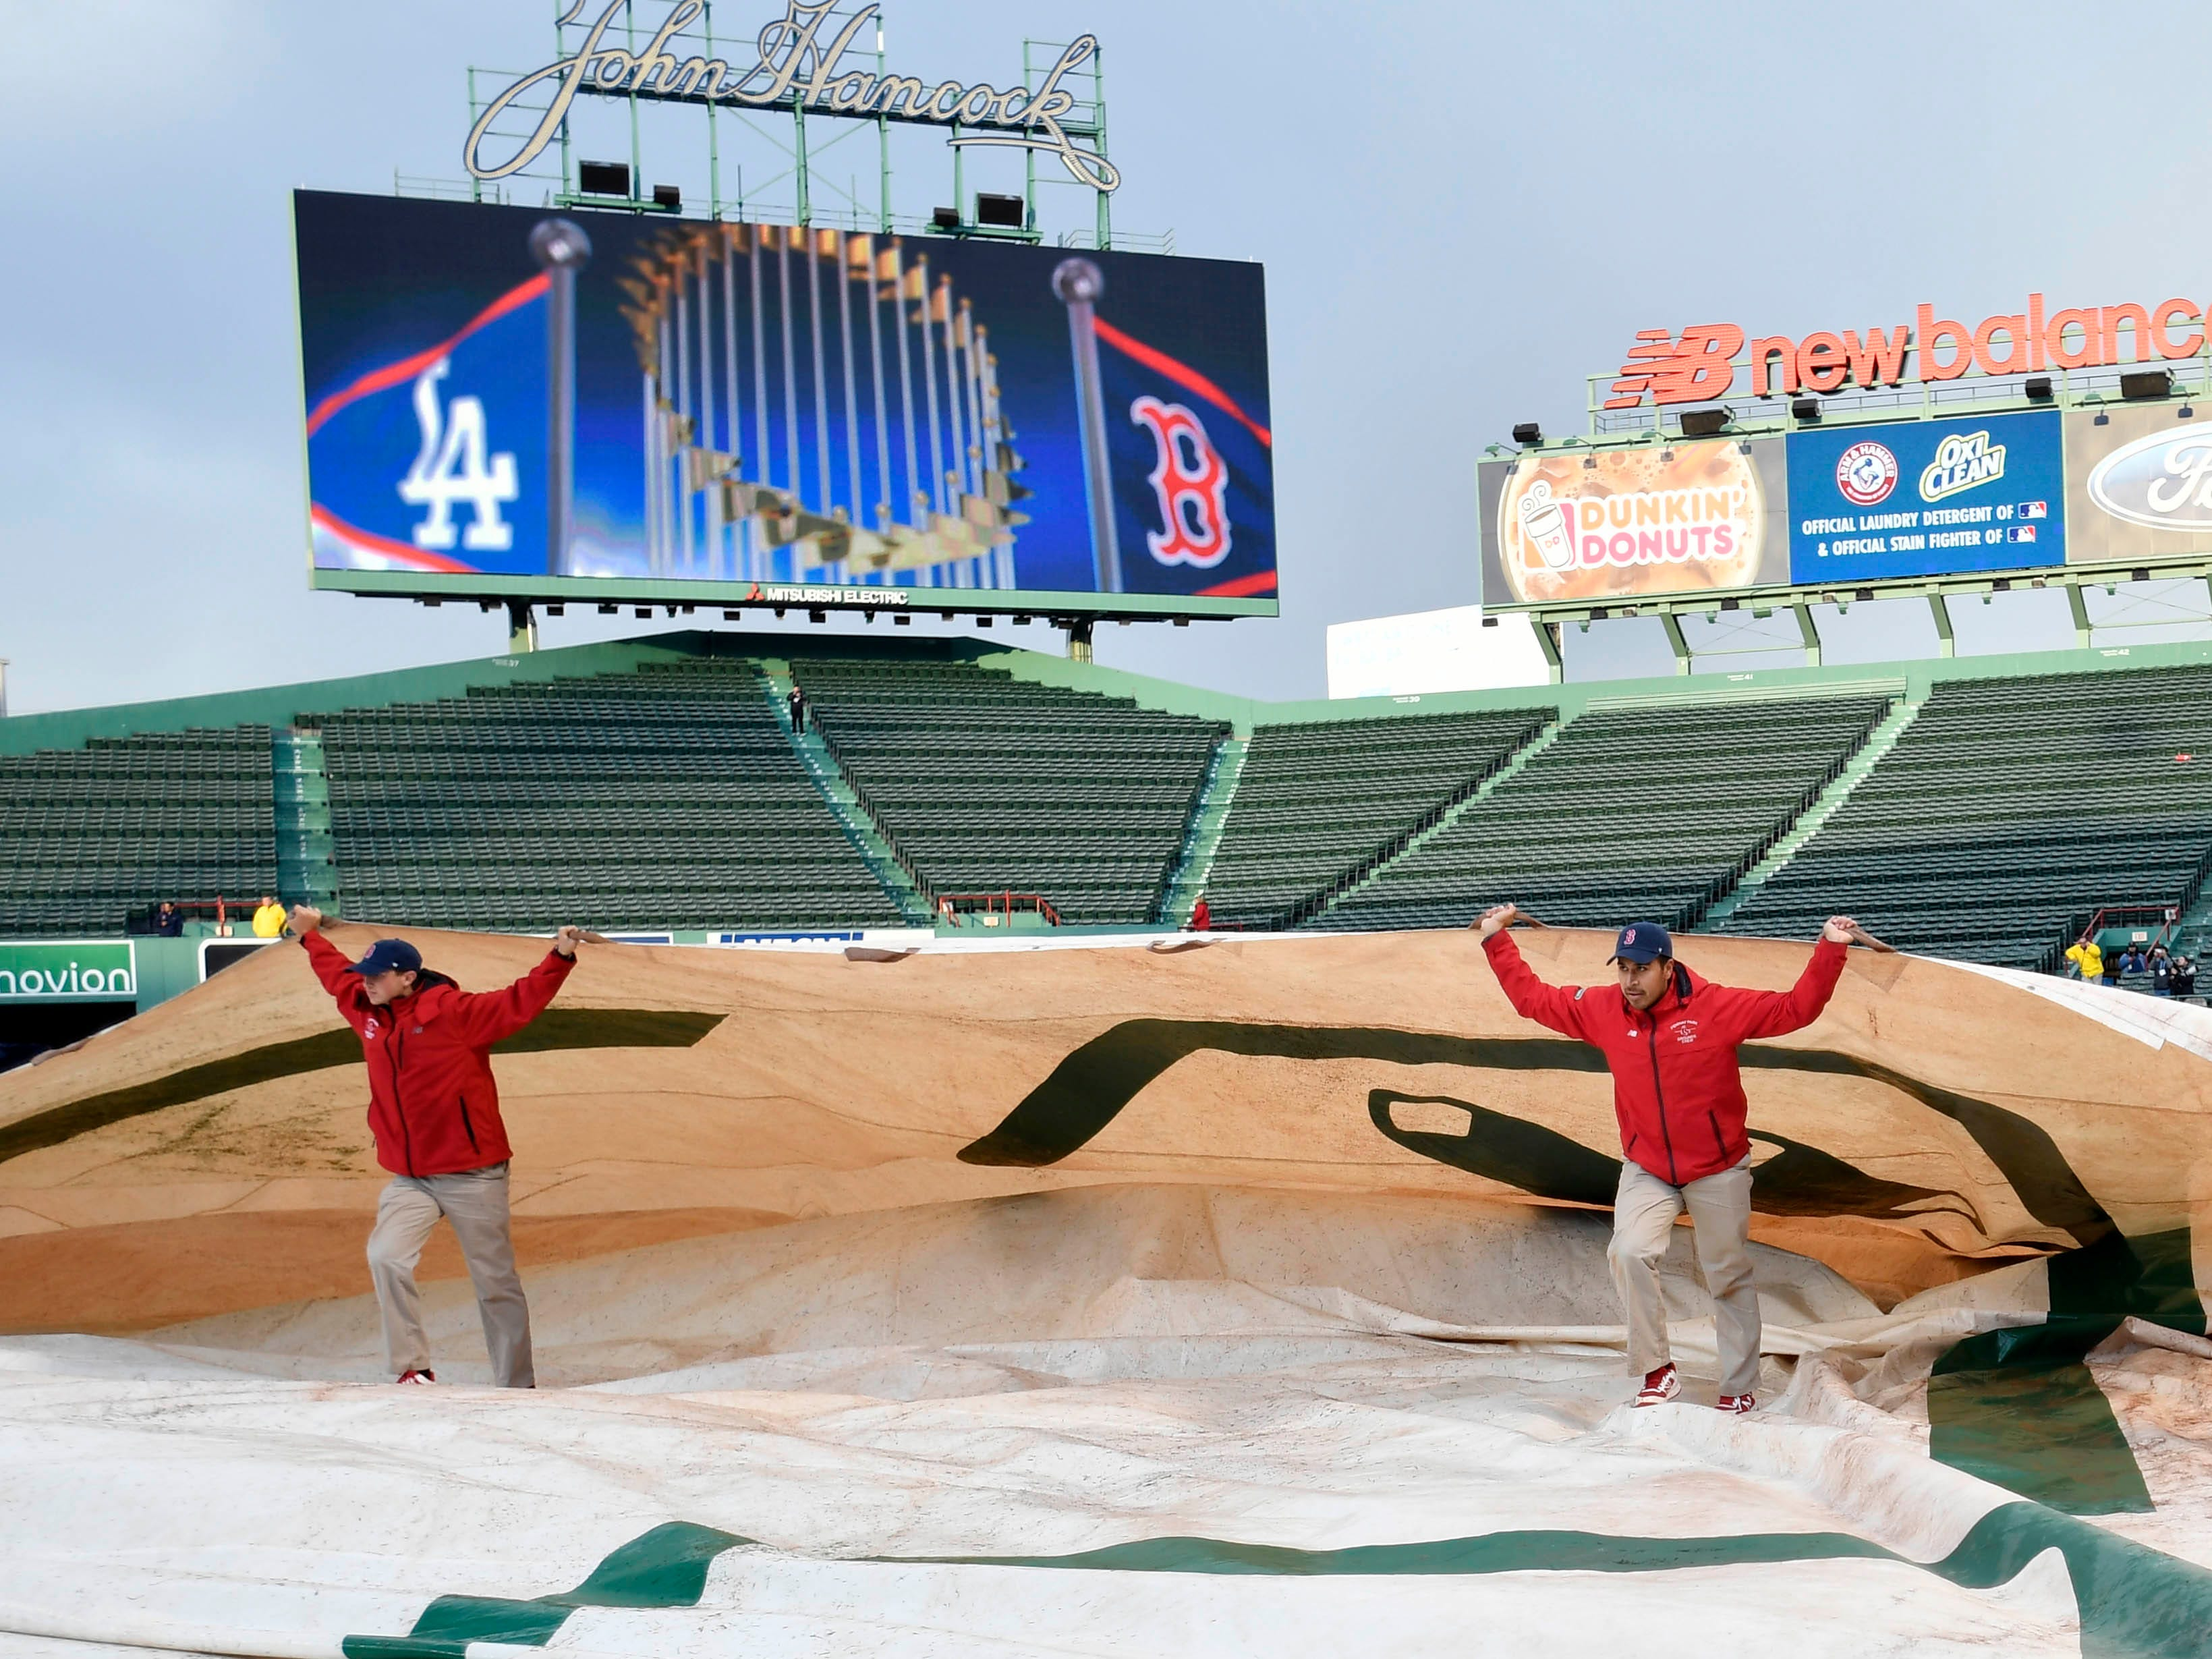 Game 1 at Fenway Park: The grounds crew removes the tarp from the field.